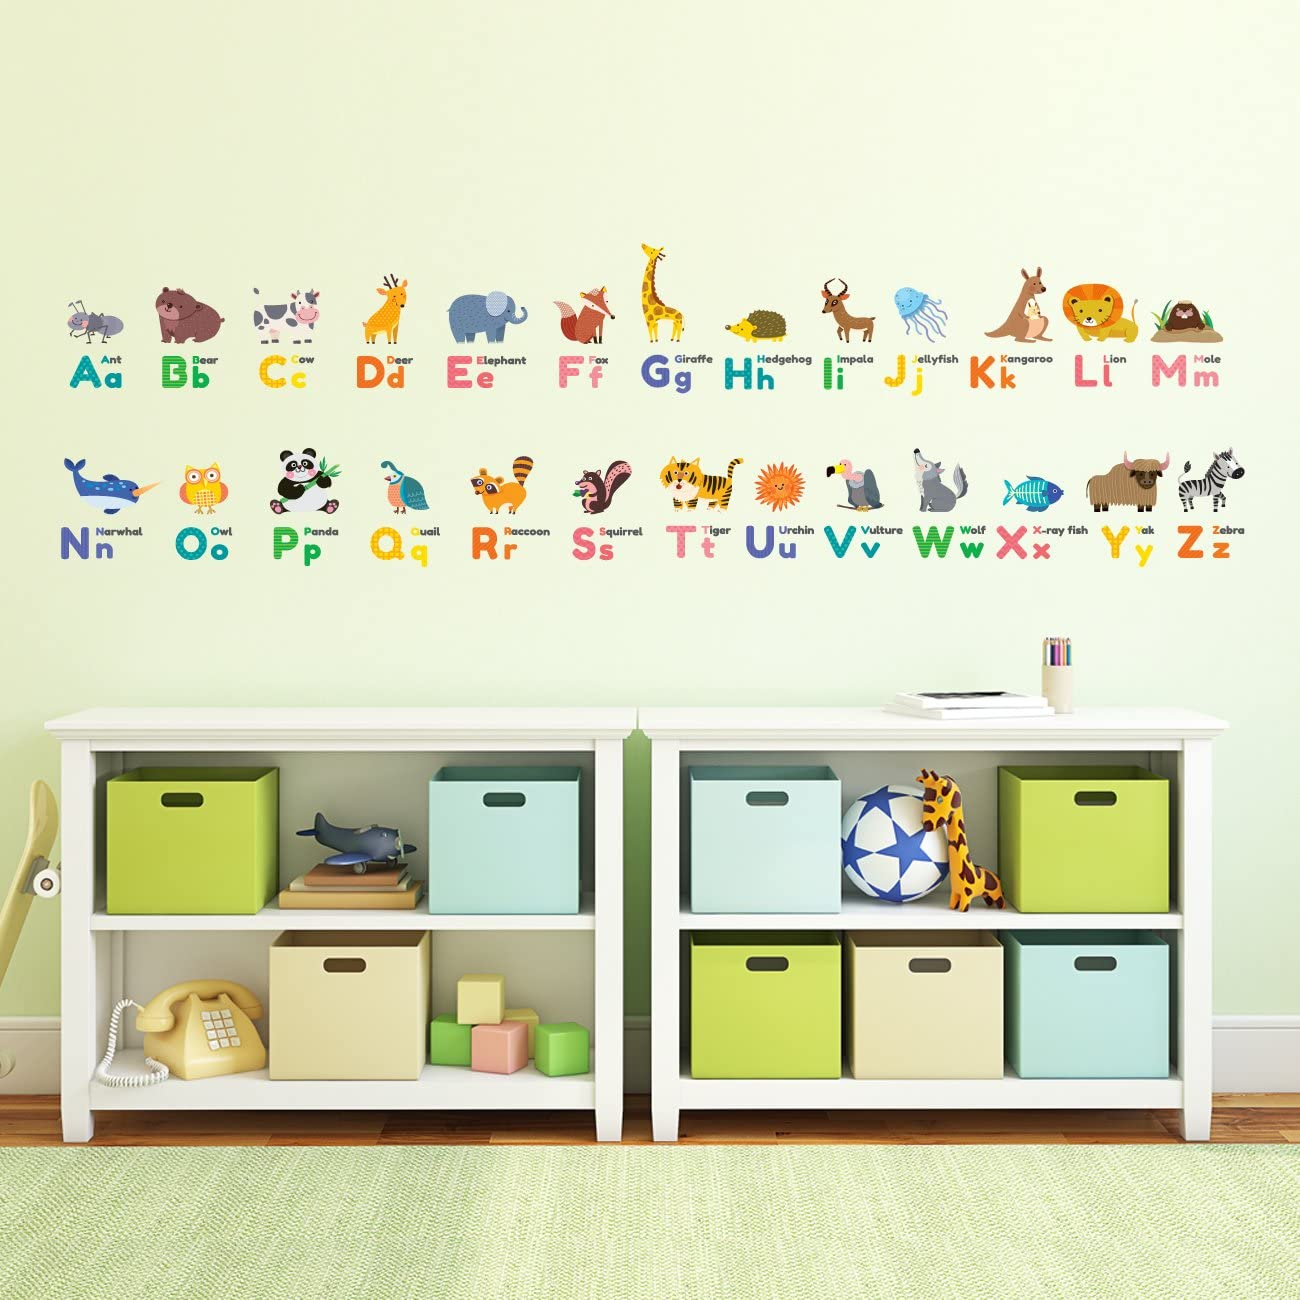 Decowall DS-8014 Colourful Animal Alphabet ABC Kids Wall Stickers Wall Decals Peel and Stick Removable Wall Stickers for Kids Nursery Bedroom Living Room Small